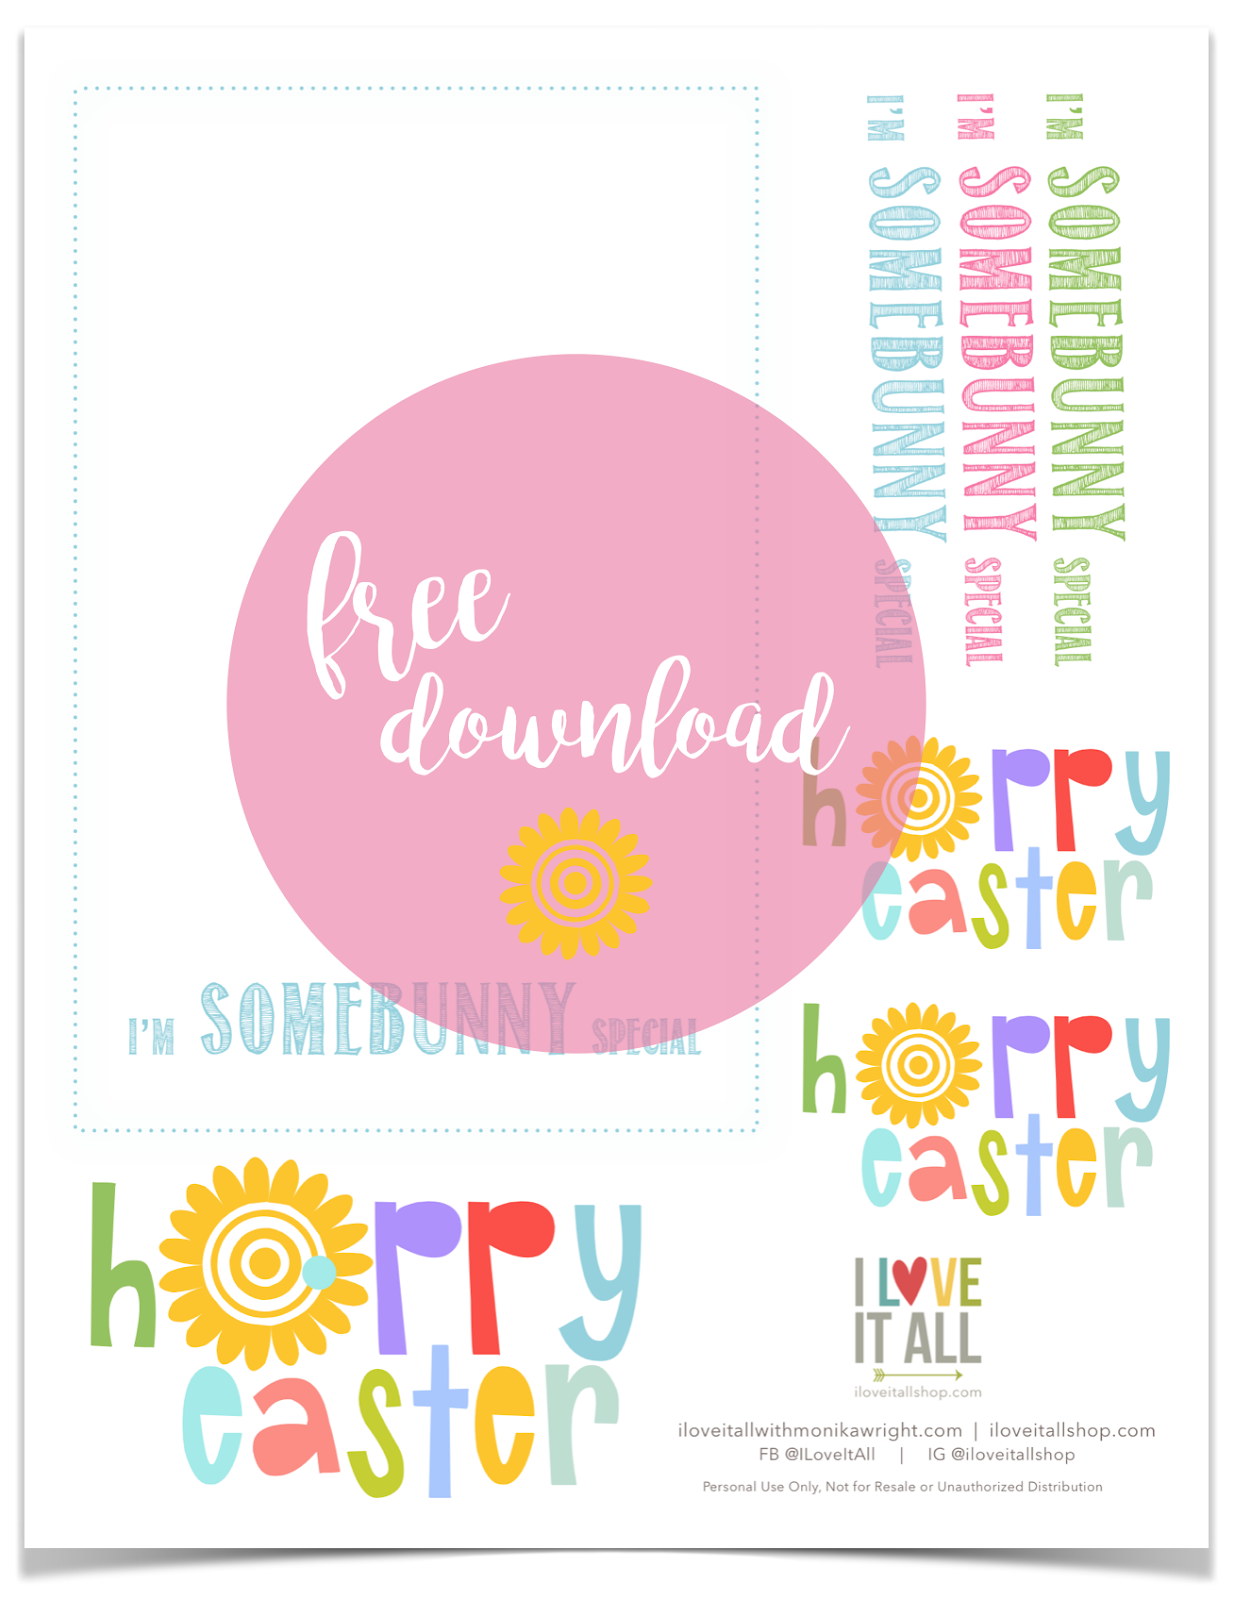 #bunny #iron on download #I'm Somebunny Special #free #printable #t-shirt